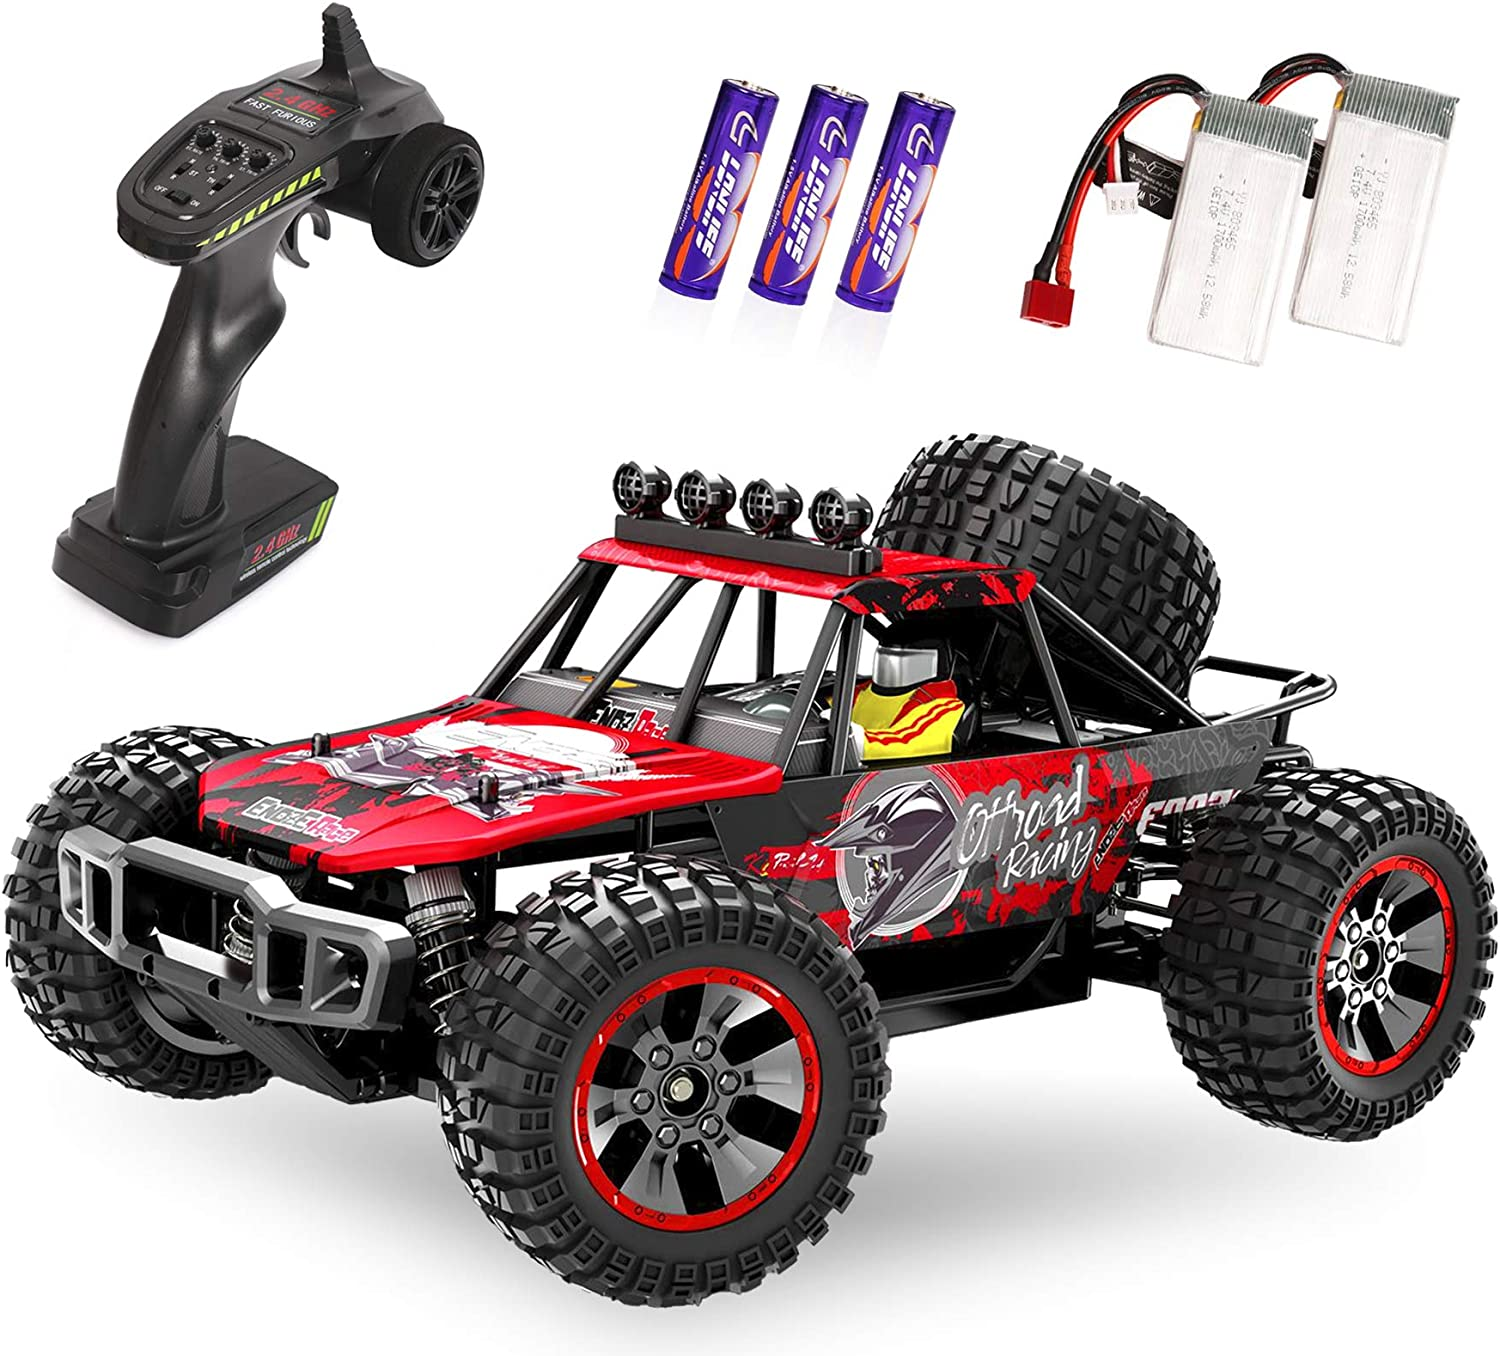 RC Cars 1 10 Scale Max 60% OFF Large Adul Remote Control Dallas Mall Car for High-Speed